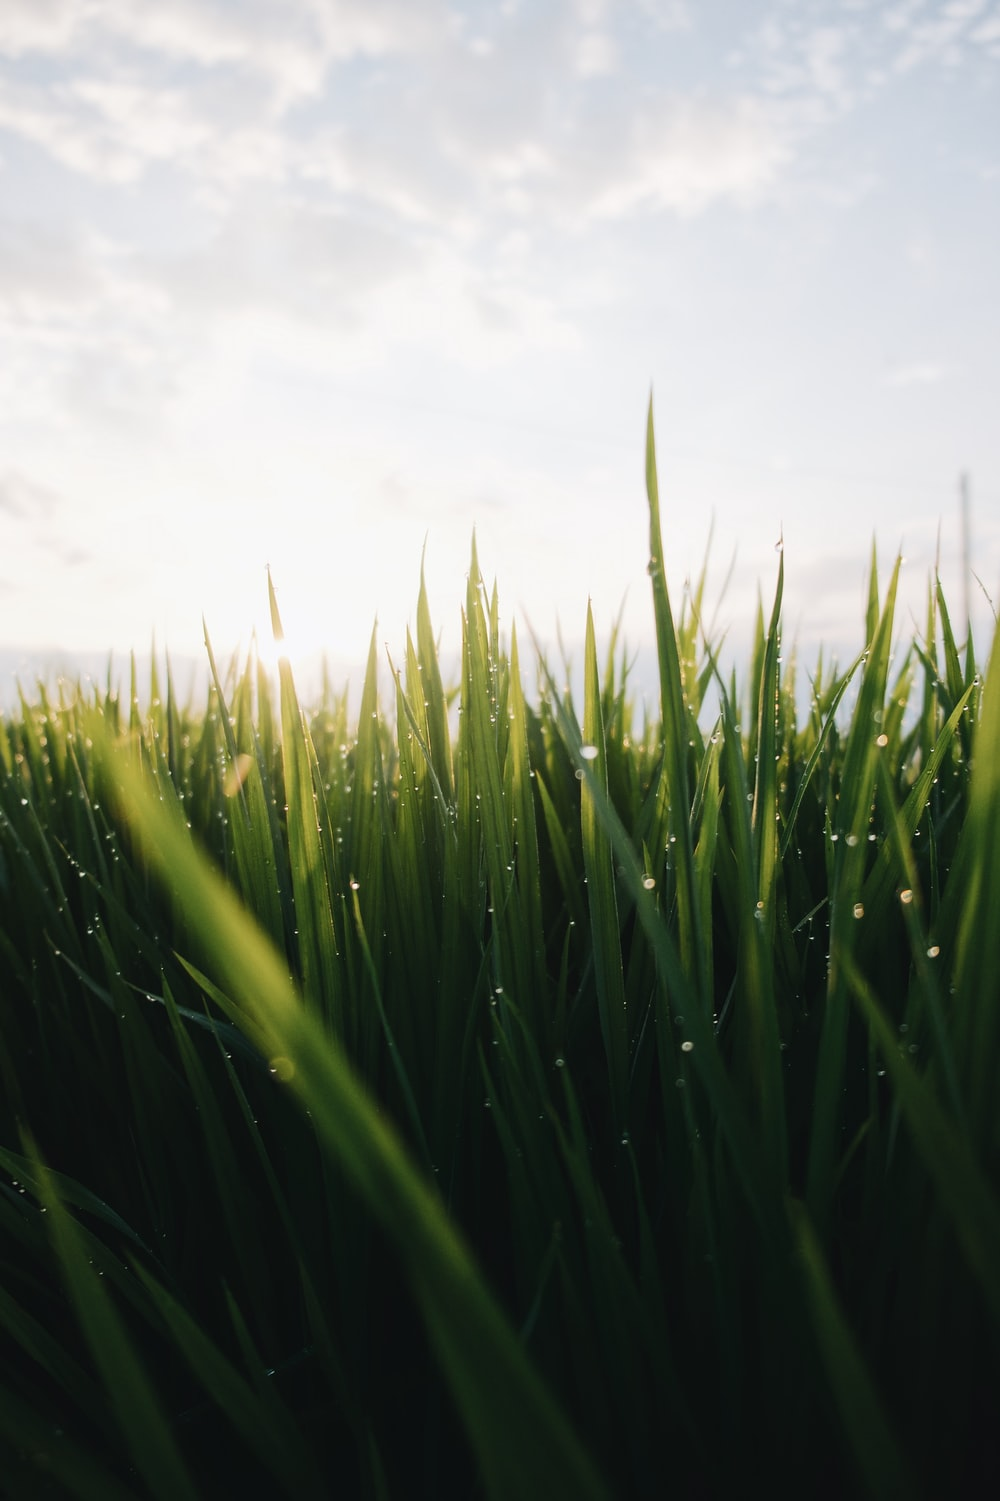 low angle photo of green grass field under cloudy sky at daytime